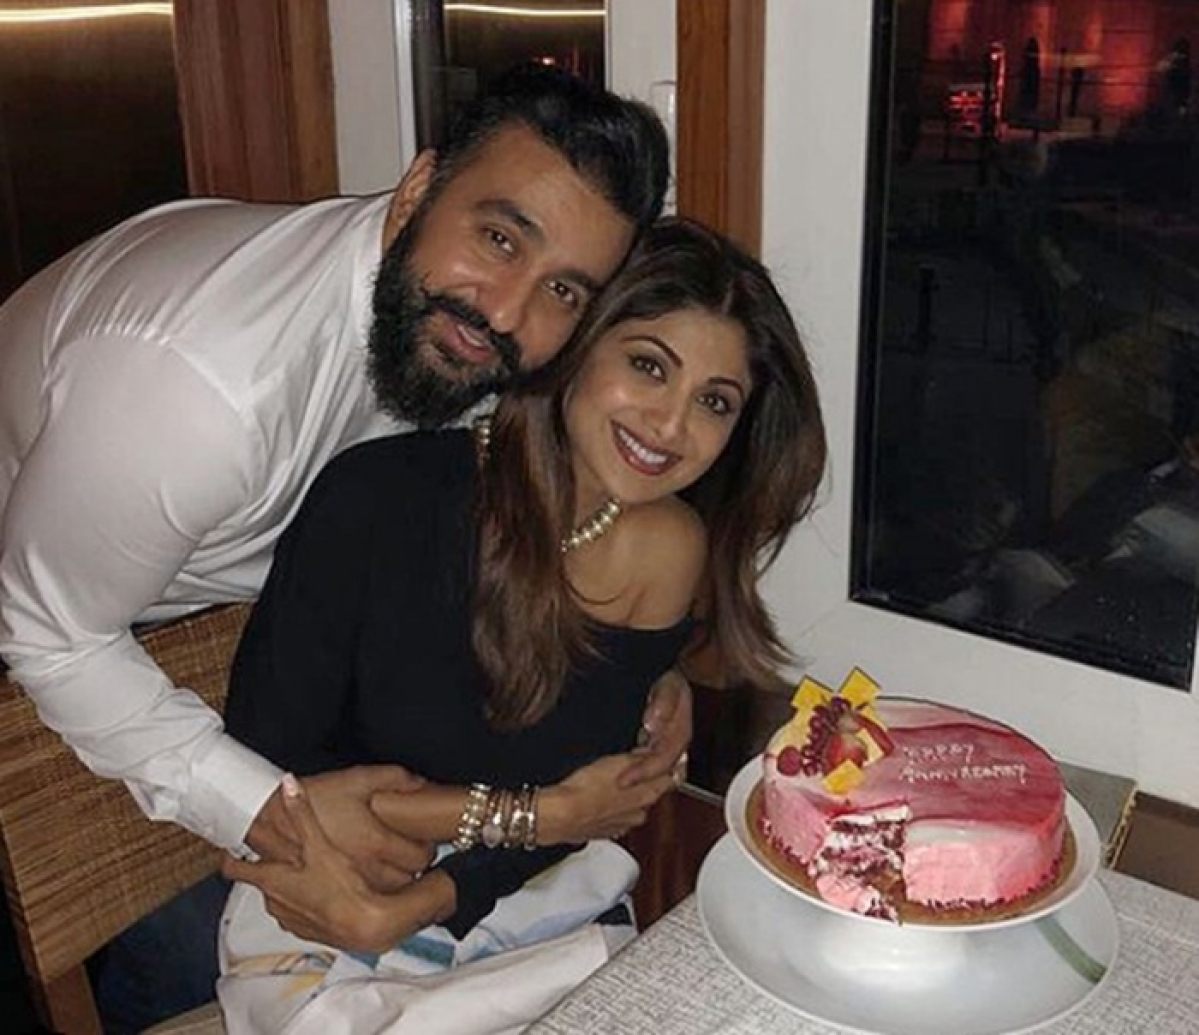 Shilpa Shetty and Raj Kundra celebrate 8 years of togetherness with cake-cutting!